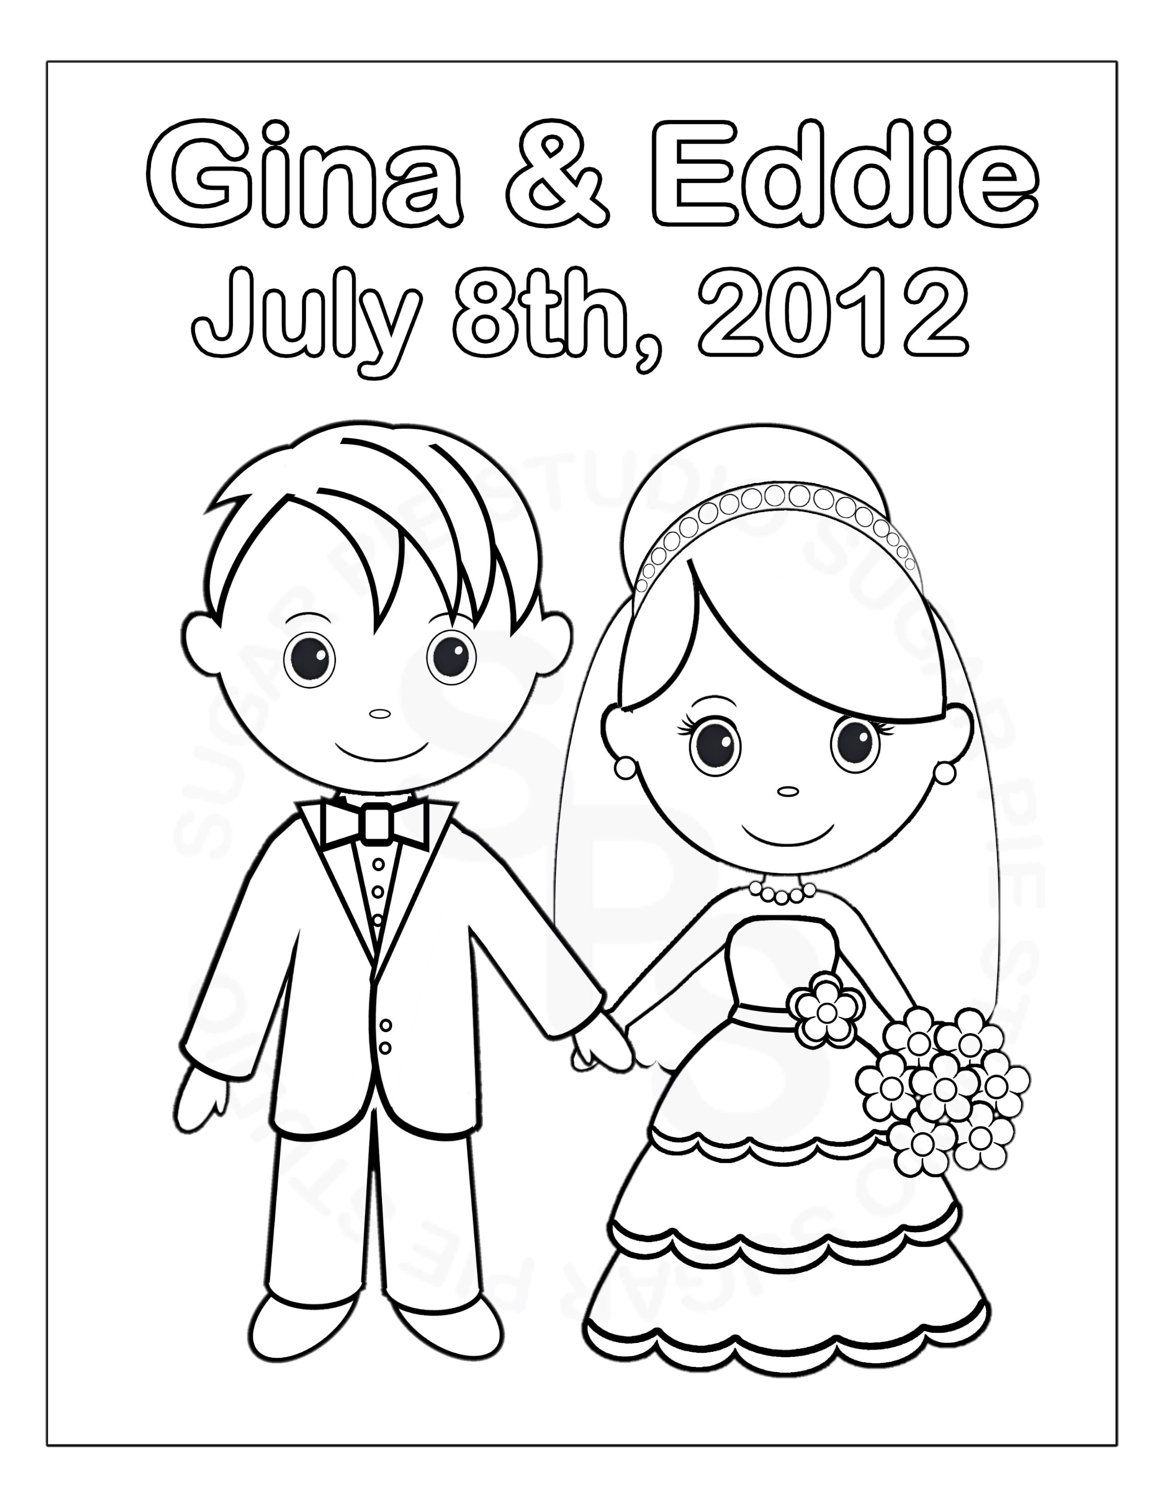 Personalized Printable Bride Groom Wedding Party Favor childrens ...